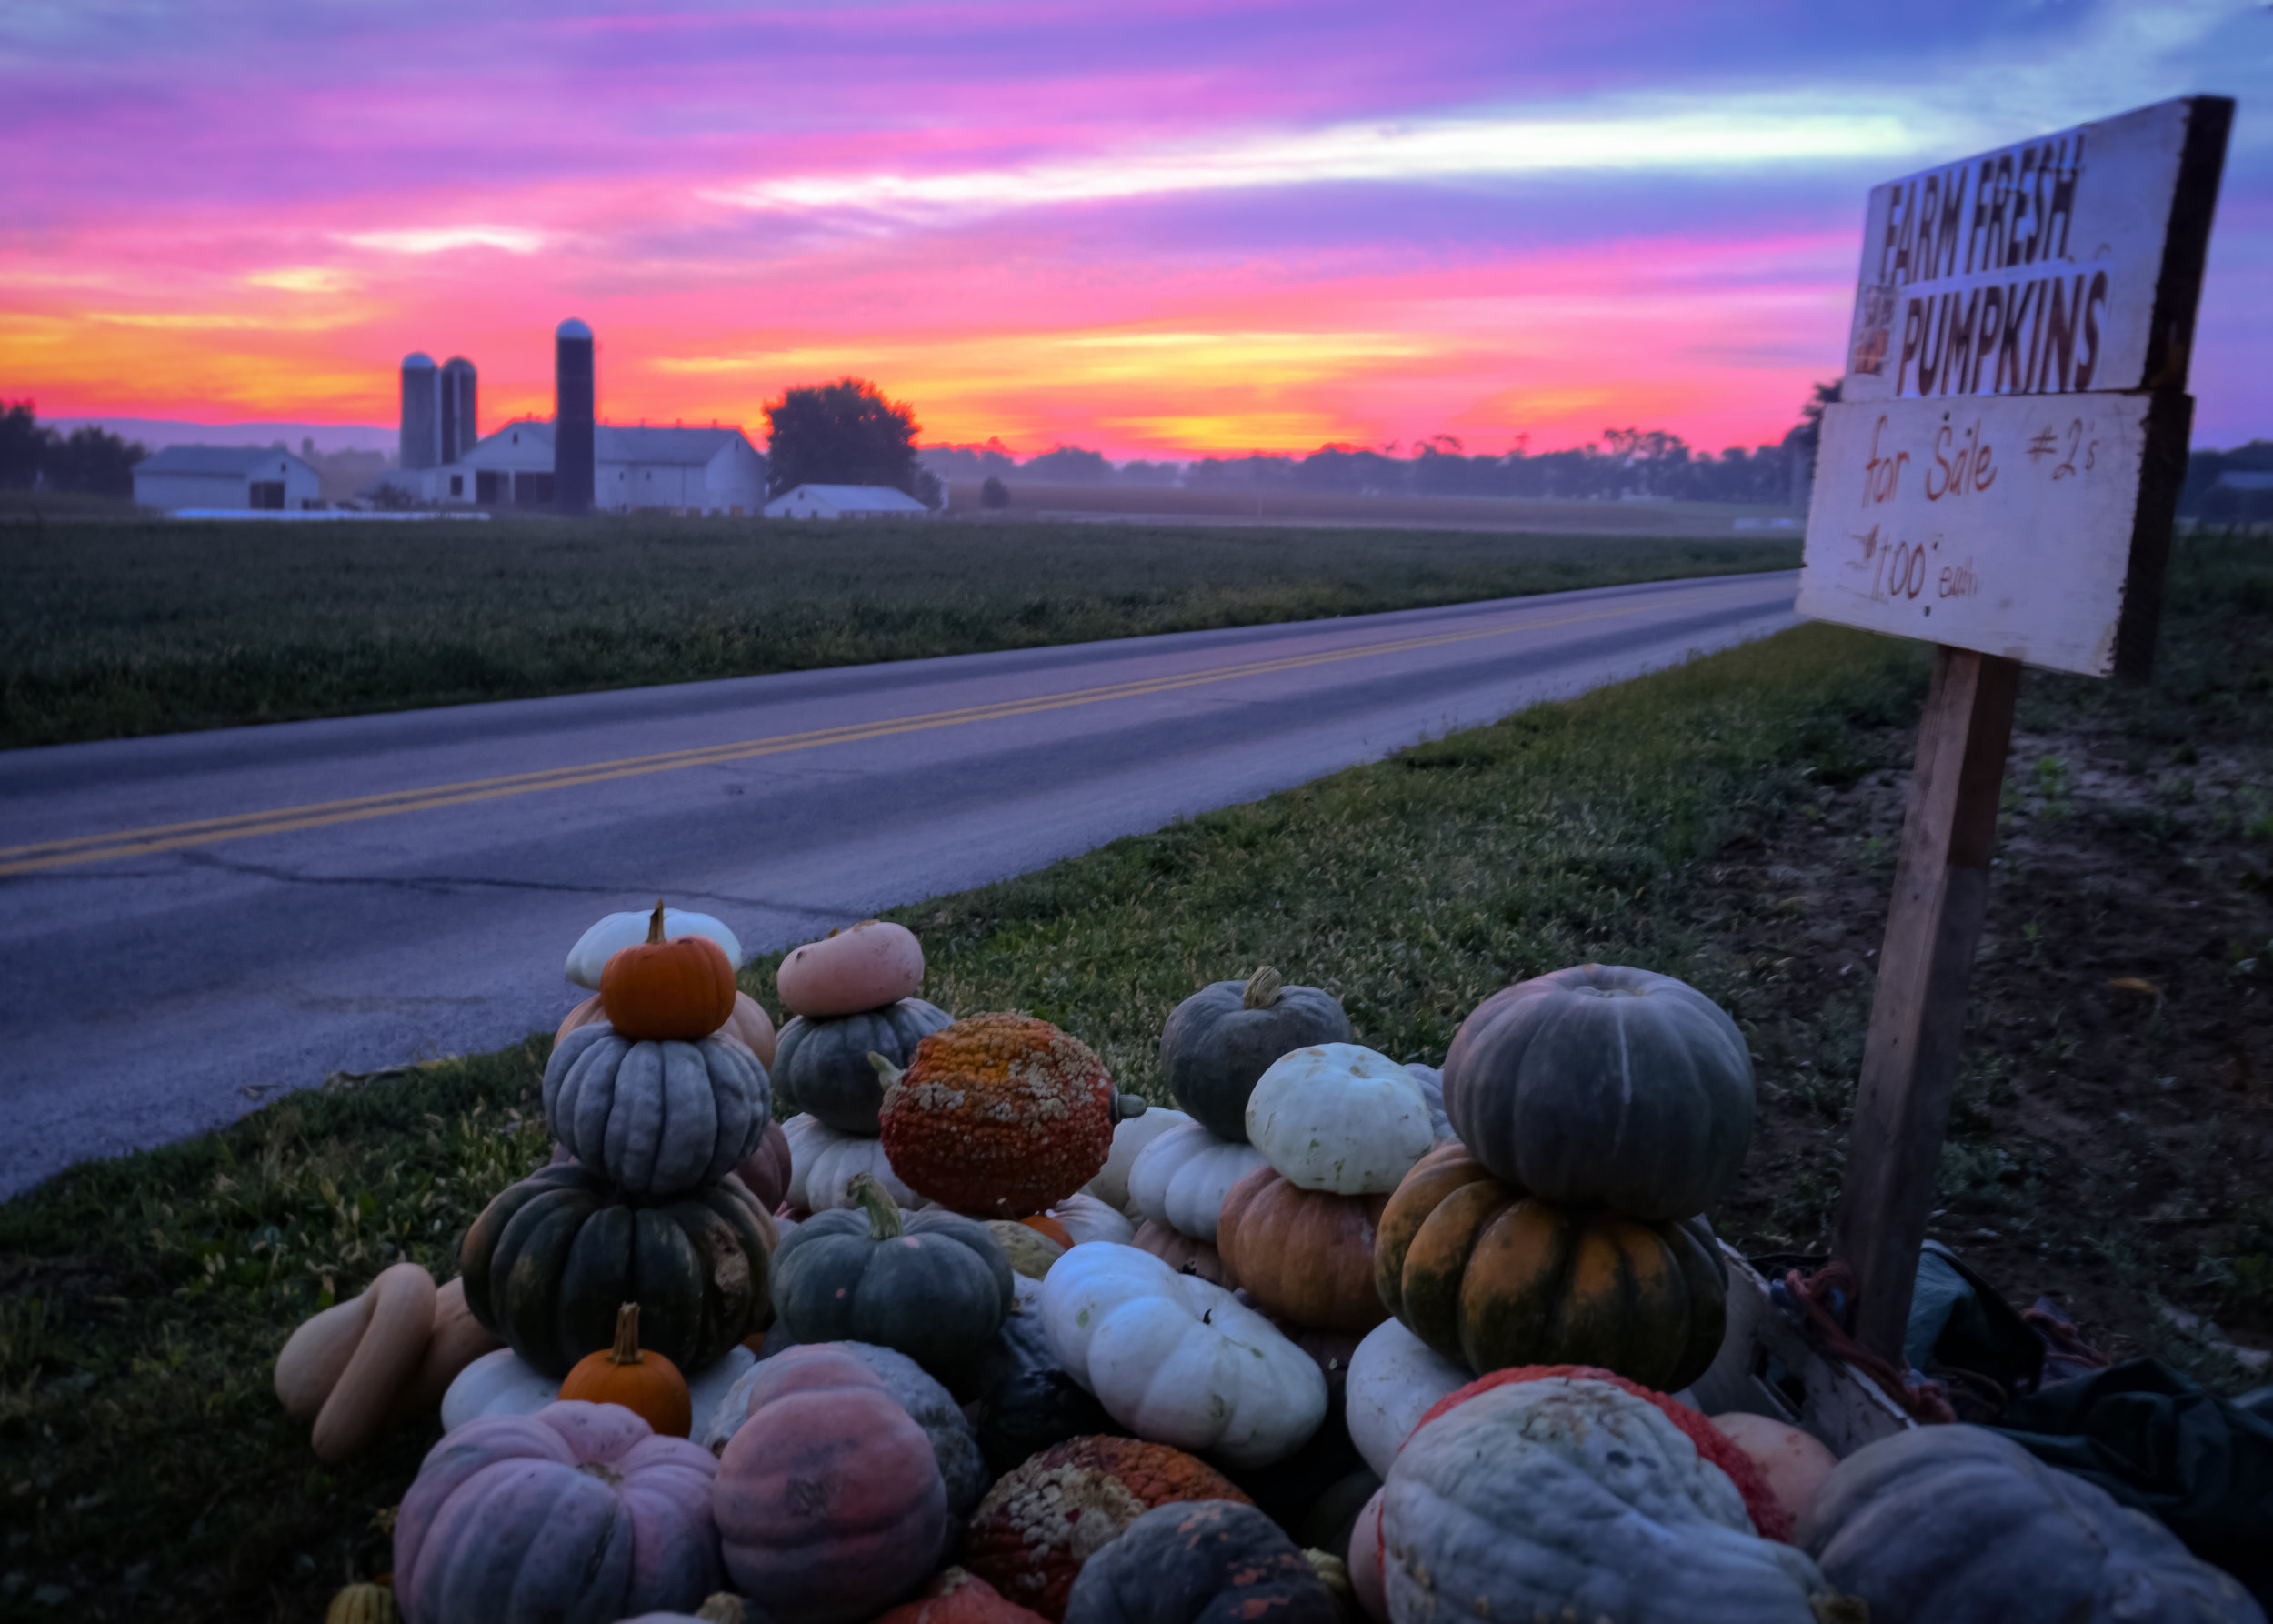 Farm fresh pumpkns at sunrise along Amsterdam road near New Holland.